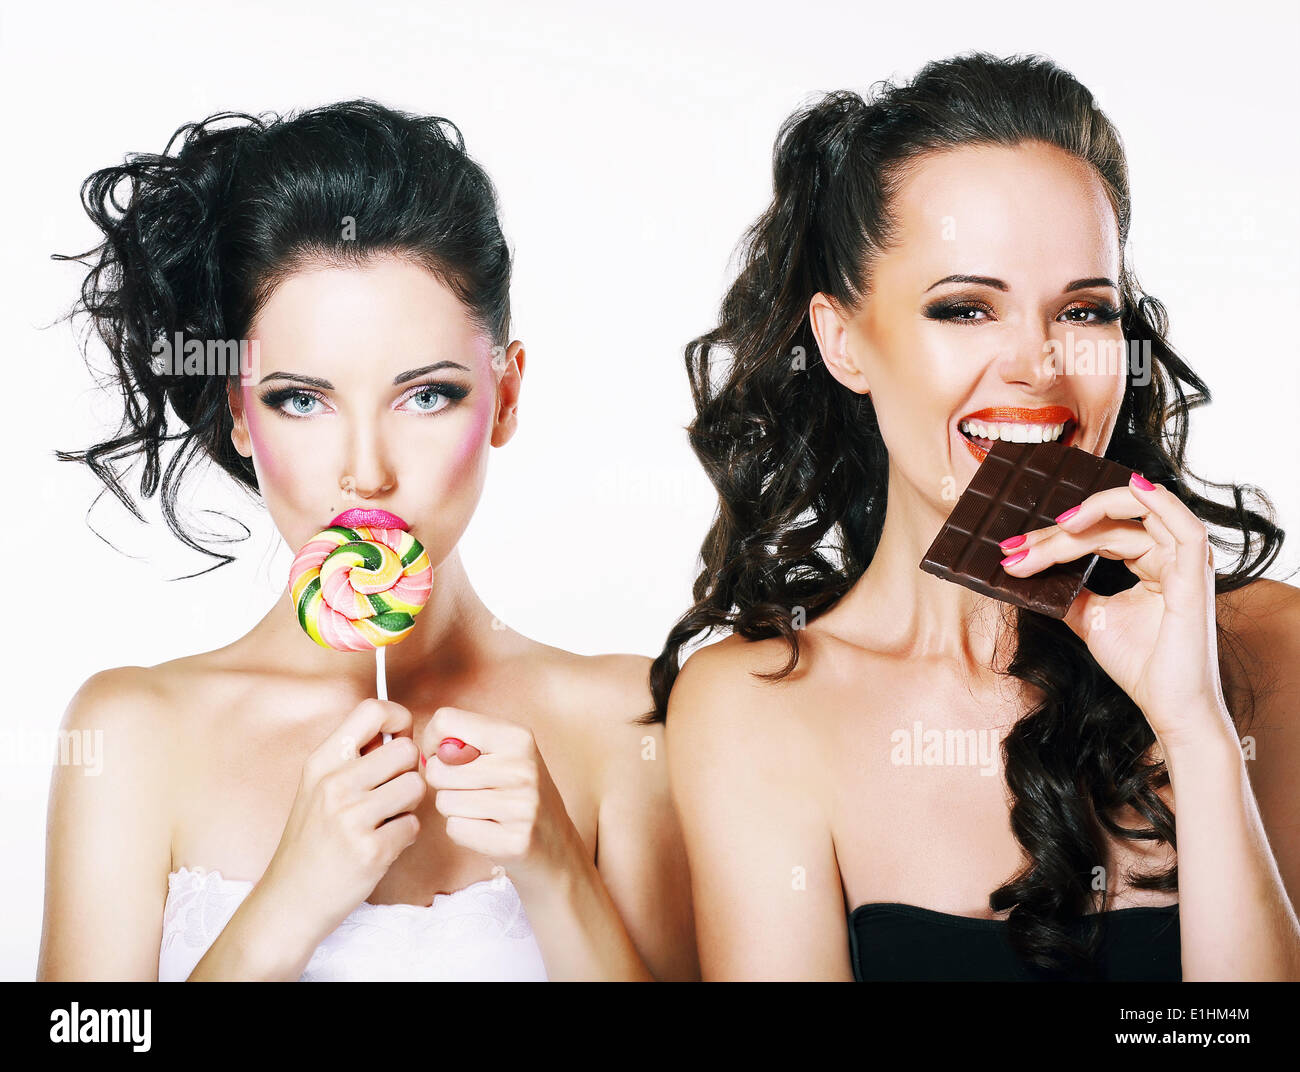 Burlesque. Parody. Couple of Women Sneers and showing a Fig - Stock Image